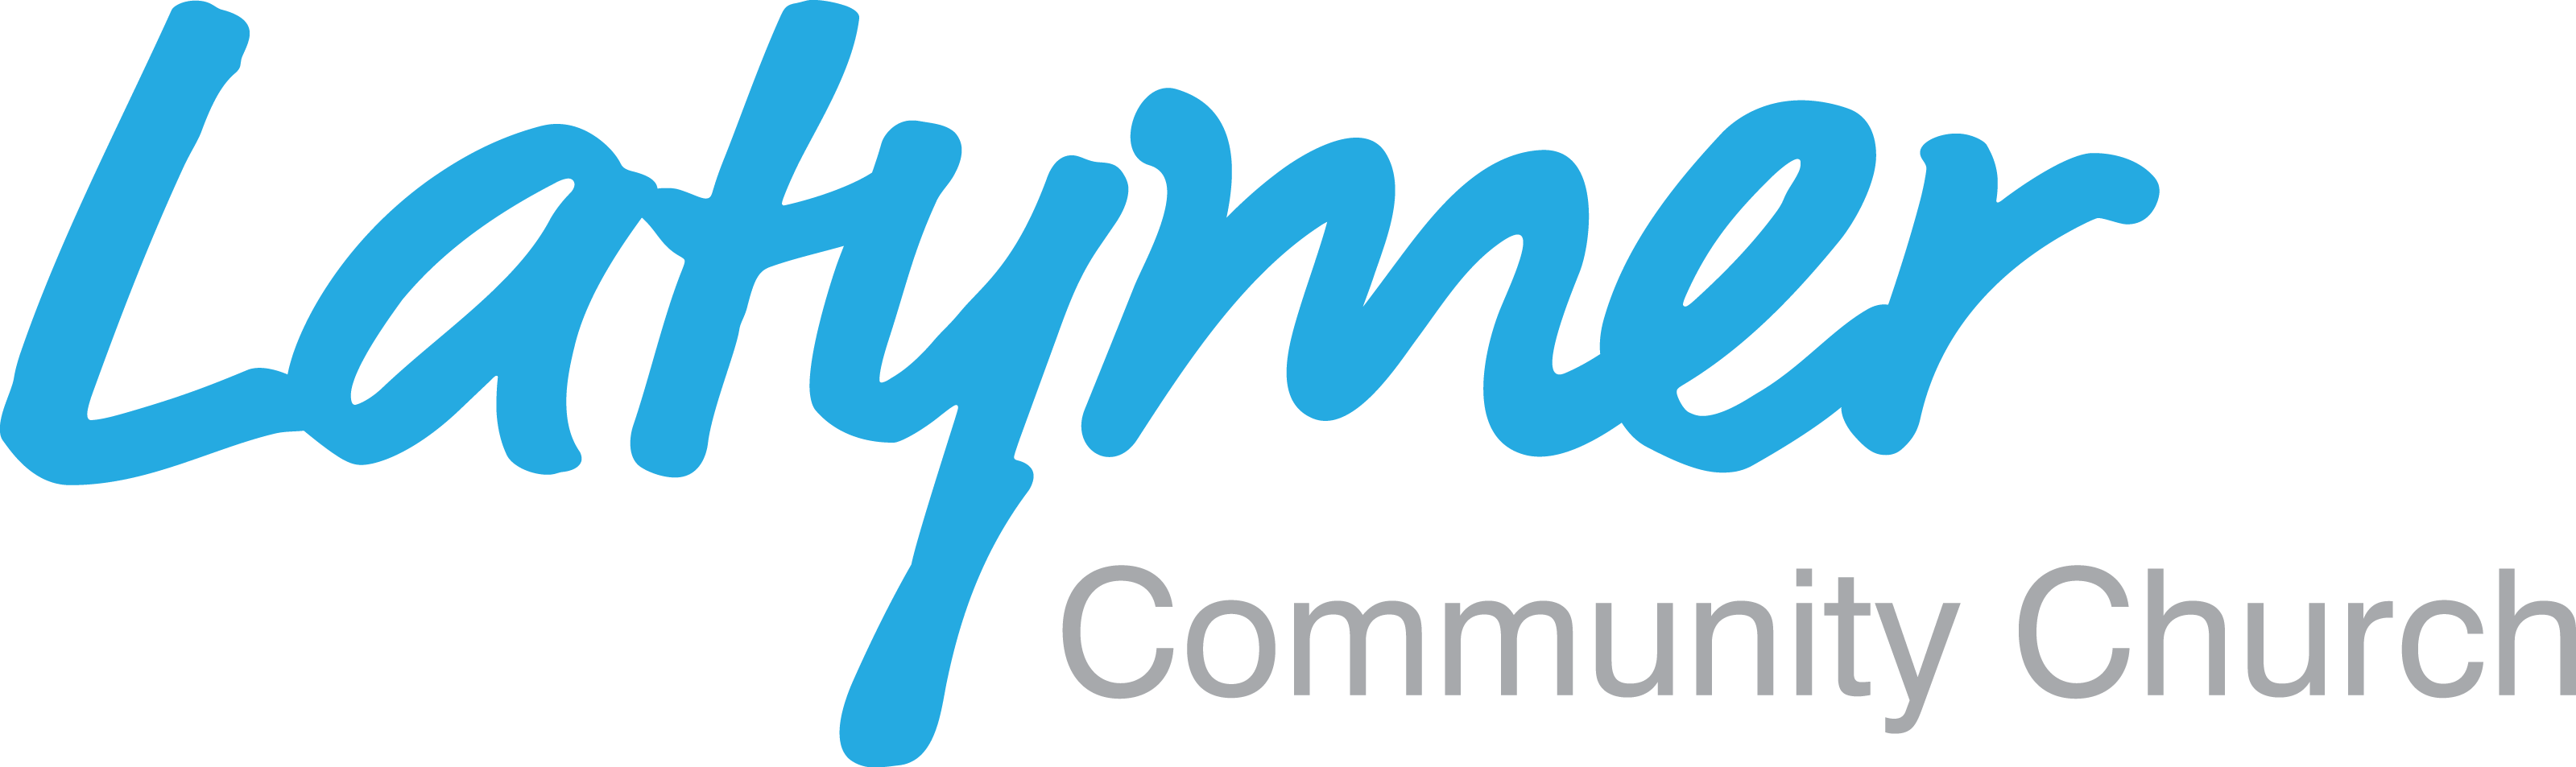 Latymer Community Church Logo